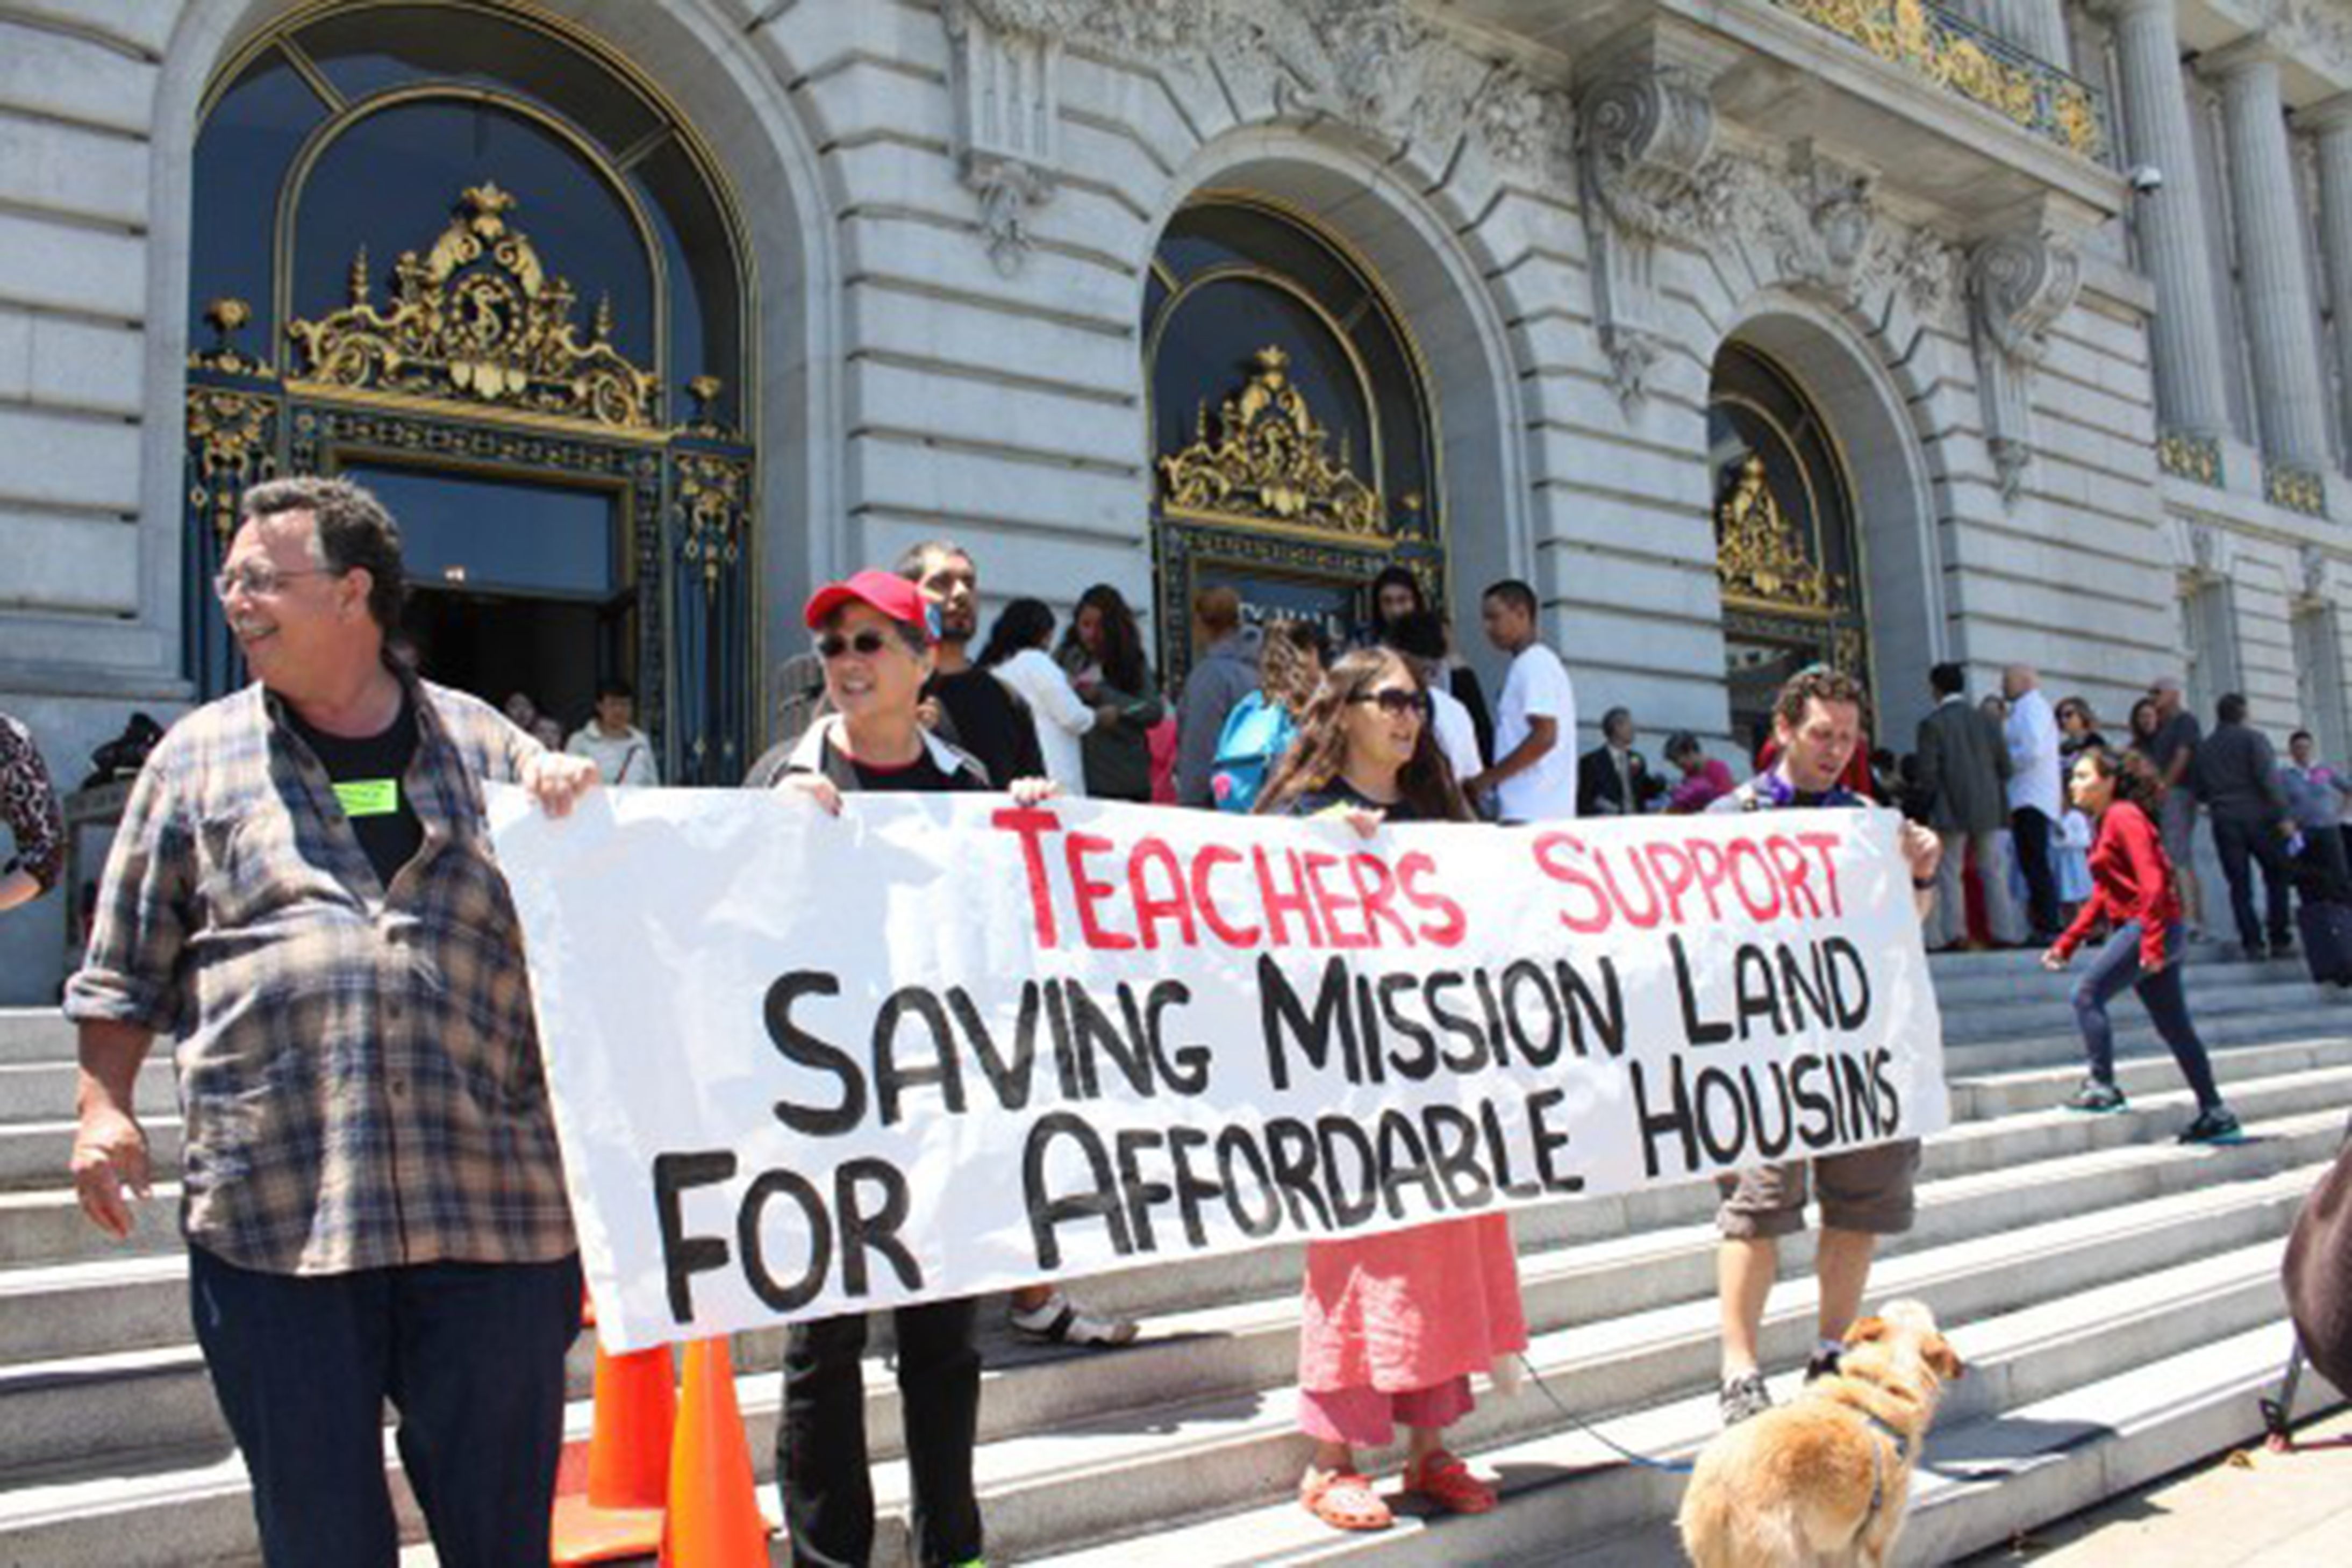 San Francisco teachers rally for affordable housing outside of San Francisco City Hall. The San Francisco News